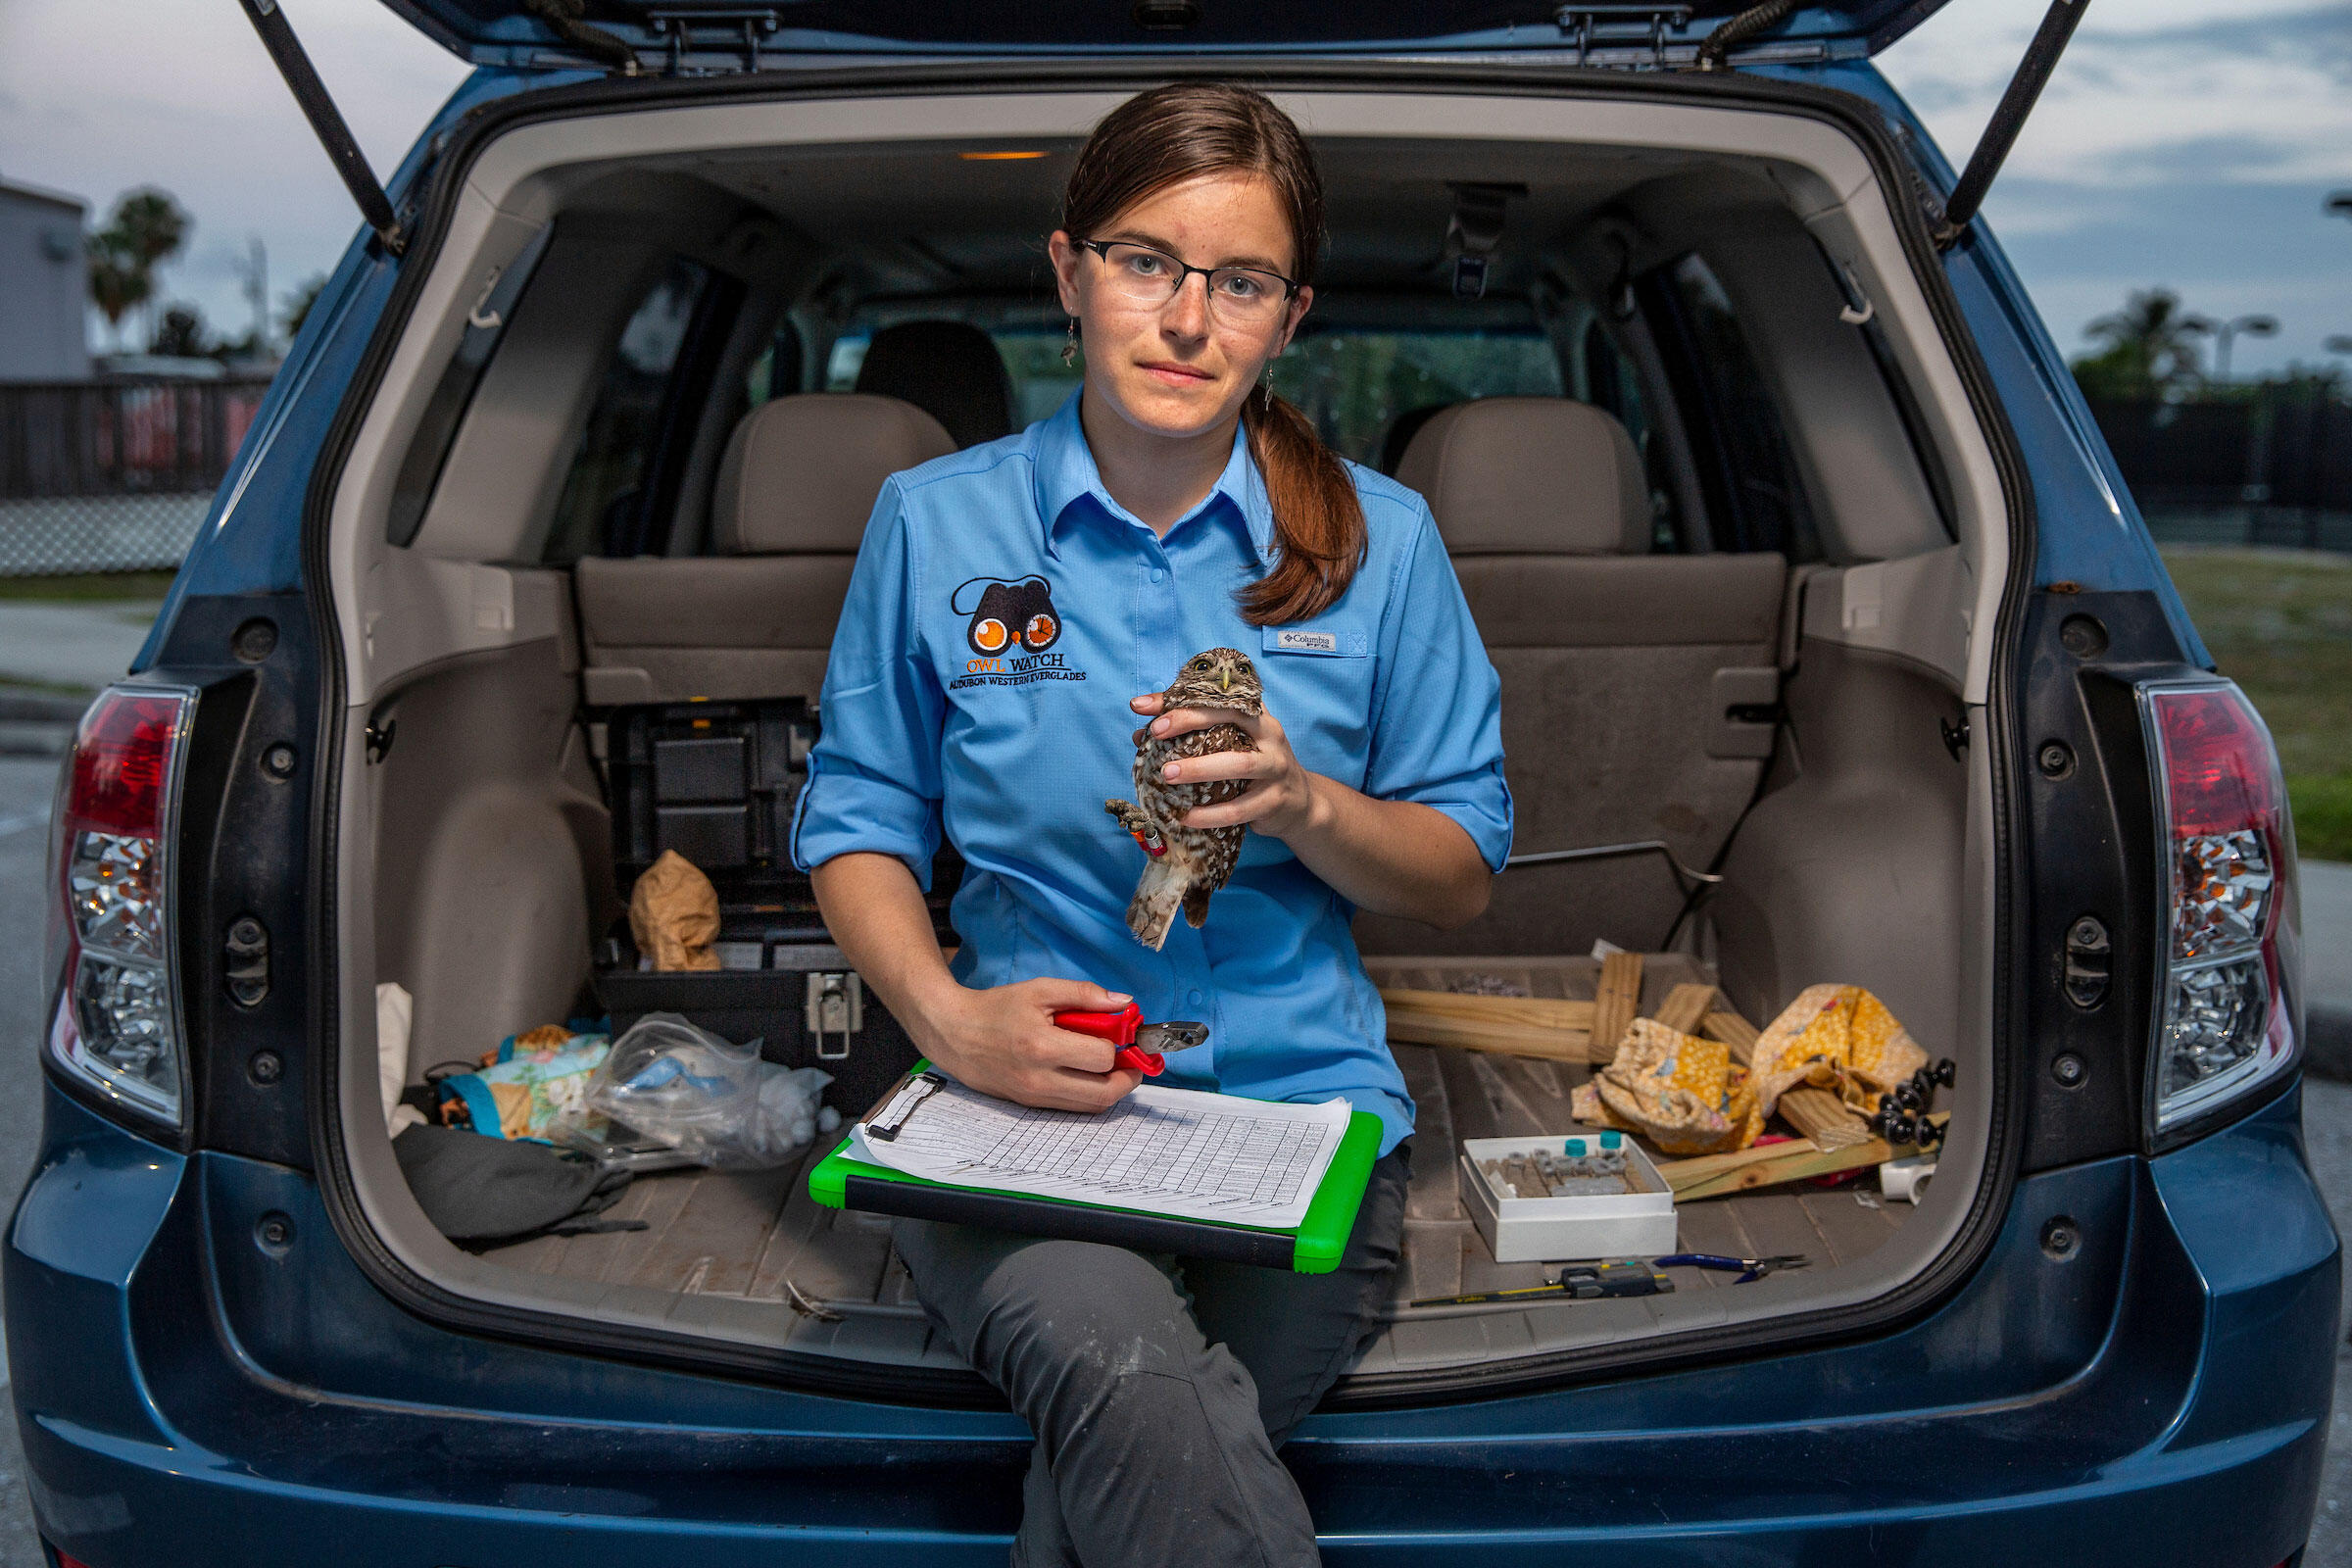 Biologist Allison Smith's car serves as a mobile workspace for monitoring owls on Marco. She temporarily transfers birds she captures to the back, where she weighs, measures, and bands them before returning them to their burrows. Karine Aigner